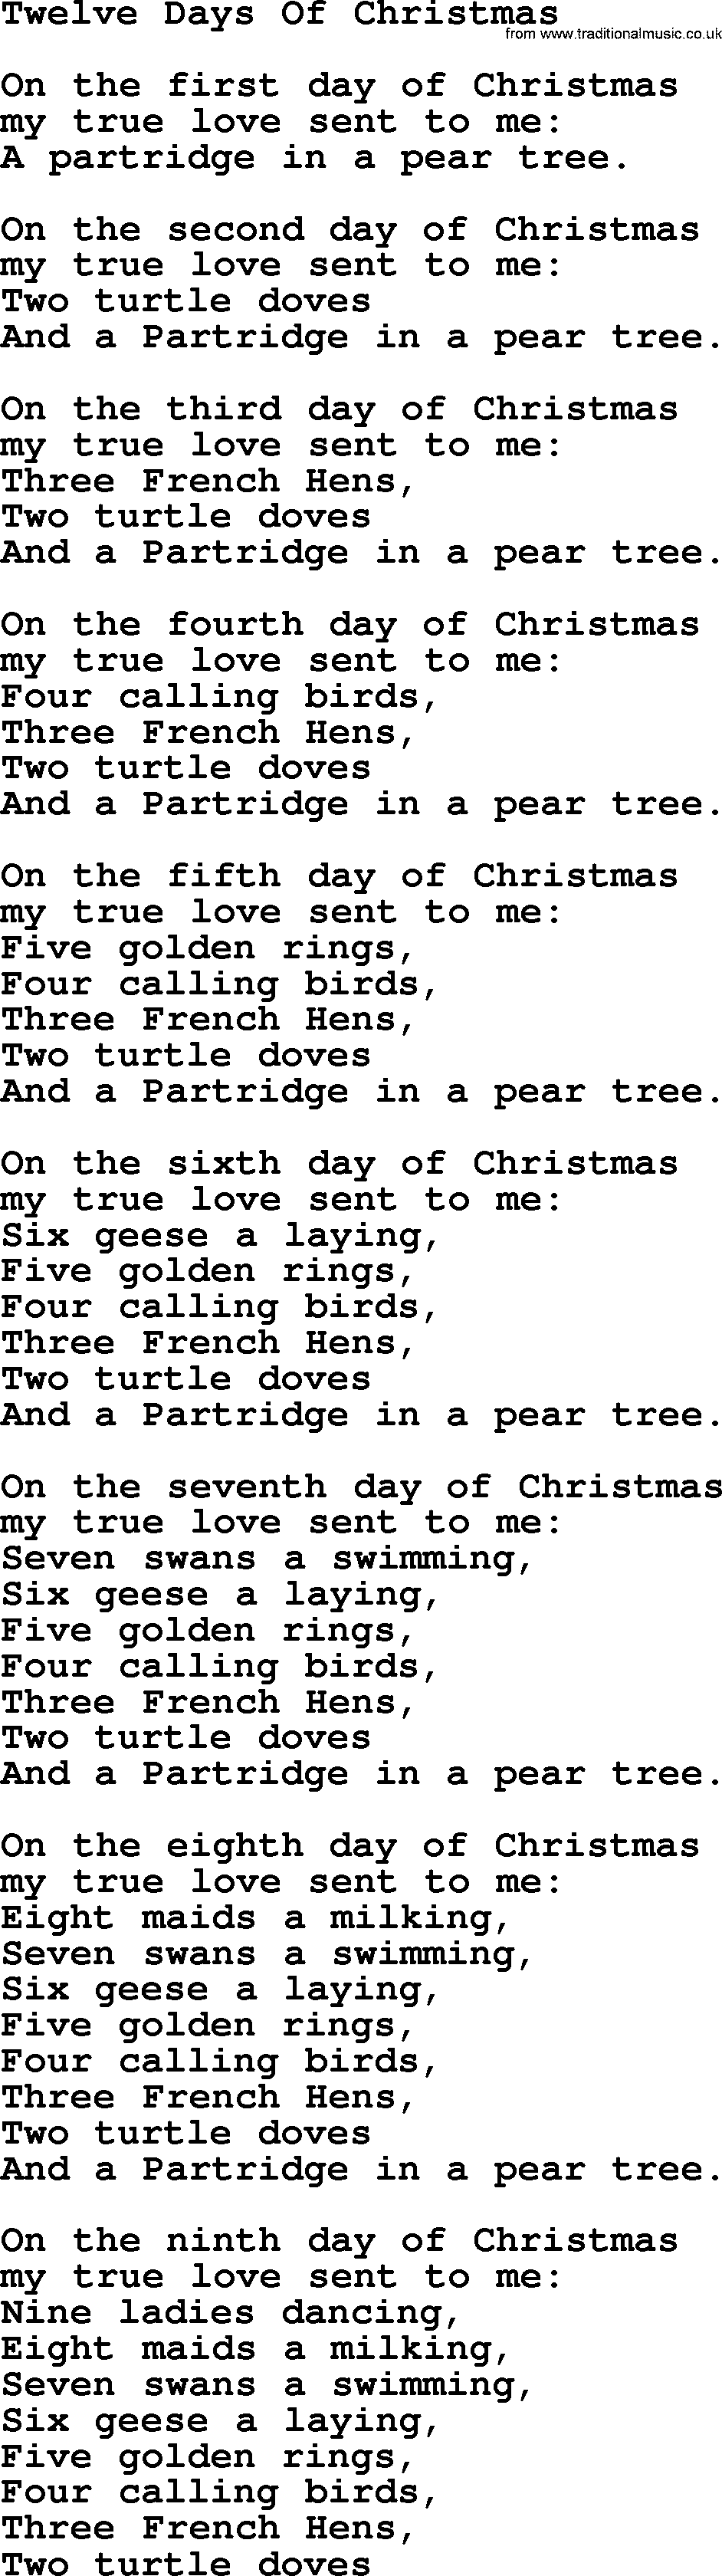 catholic hymns song twelve days of christmas lyrics - 12 Days Of Christmas Lyrics